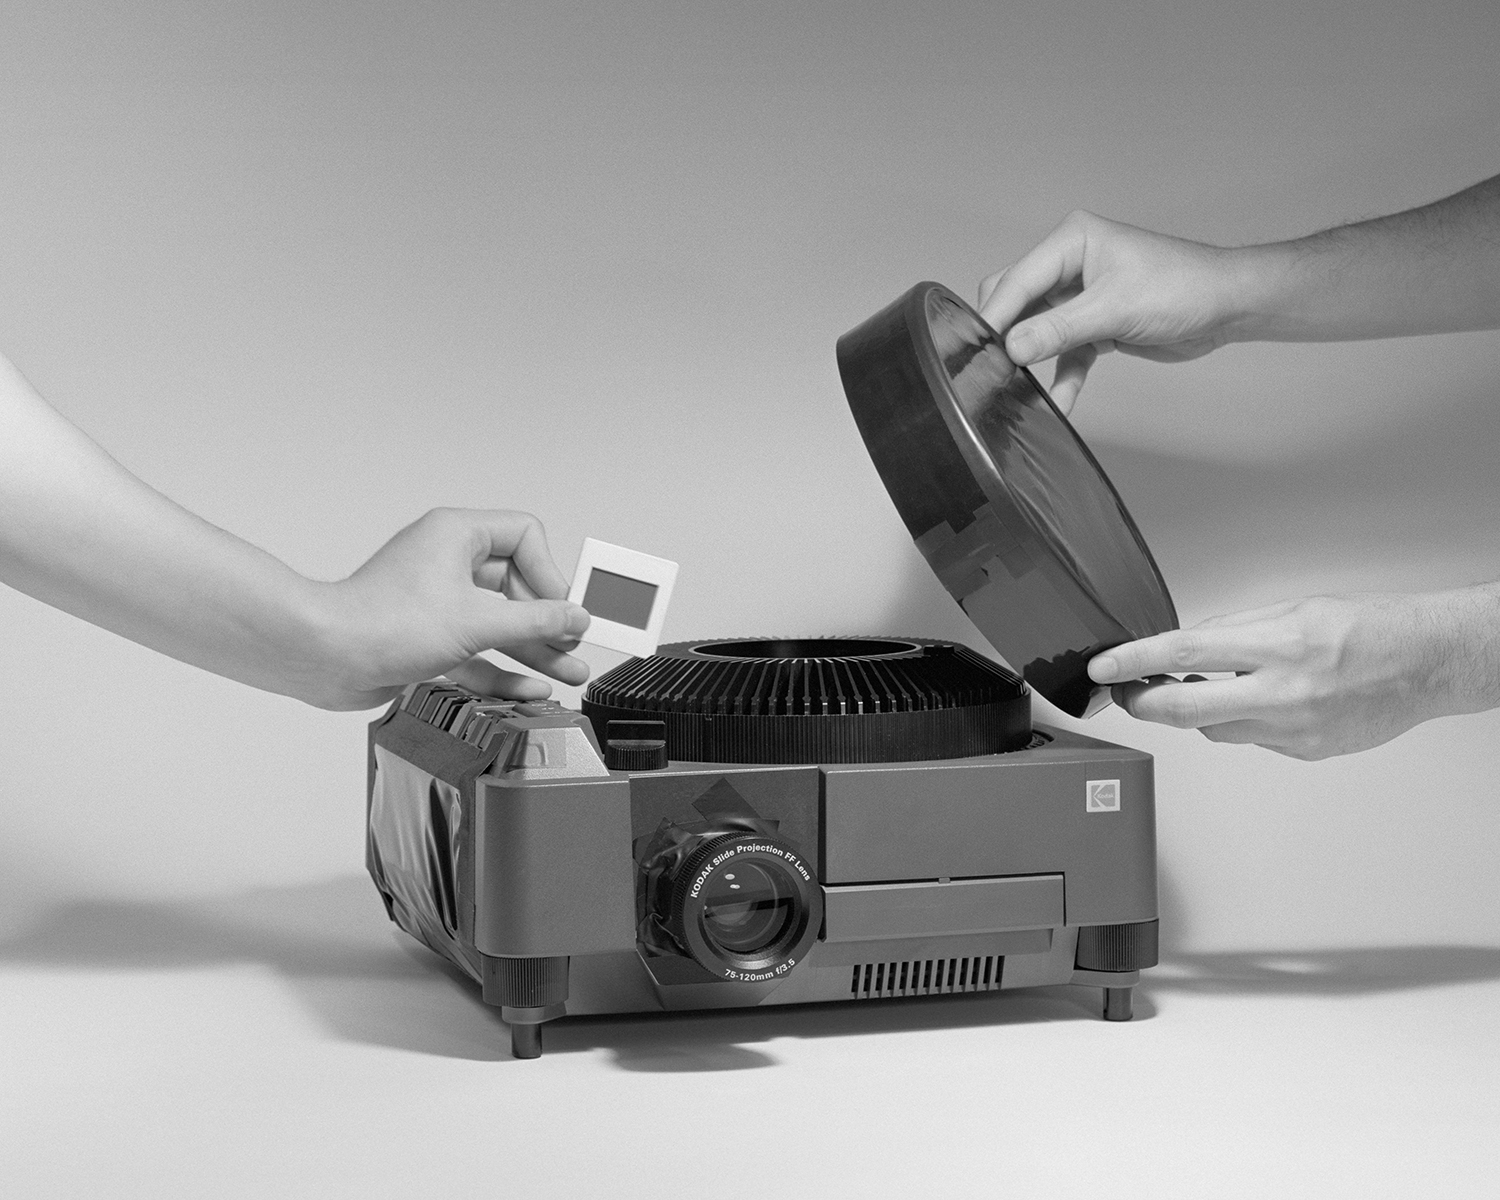 Adaptation of a Slide Projector into a Camera